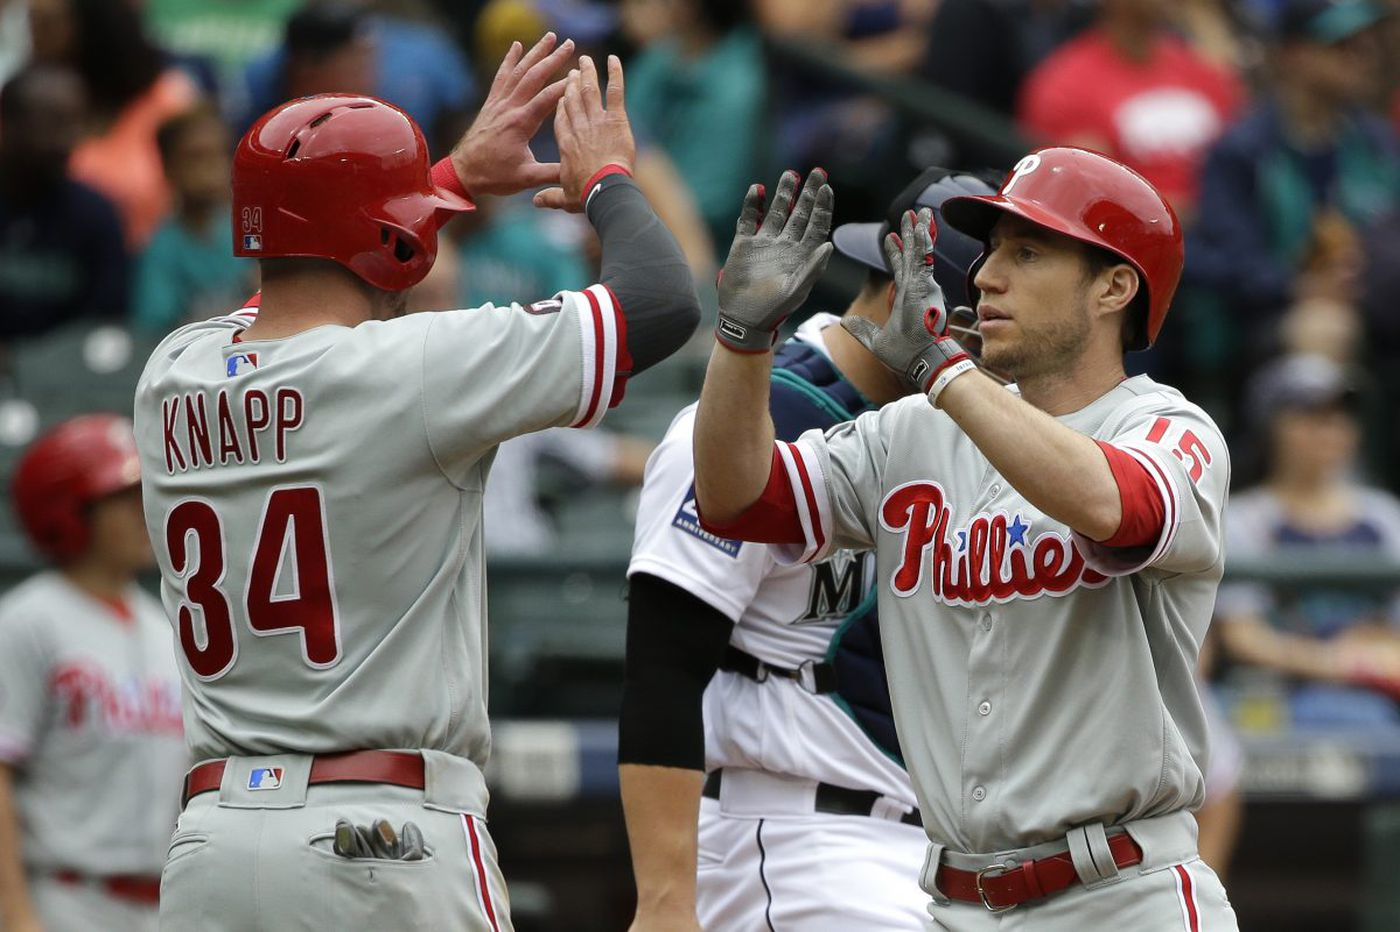 Phillies win second straight since Freddy Galvis 'lit a fire'